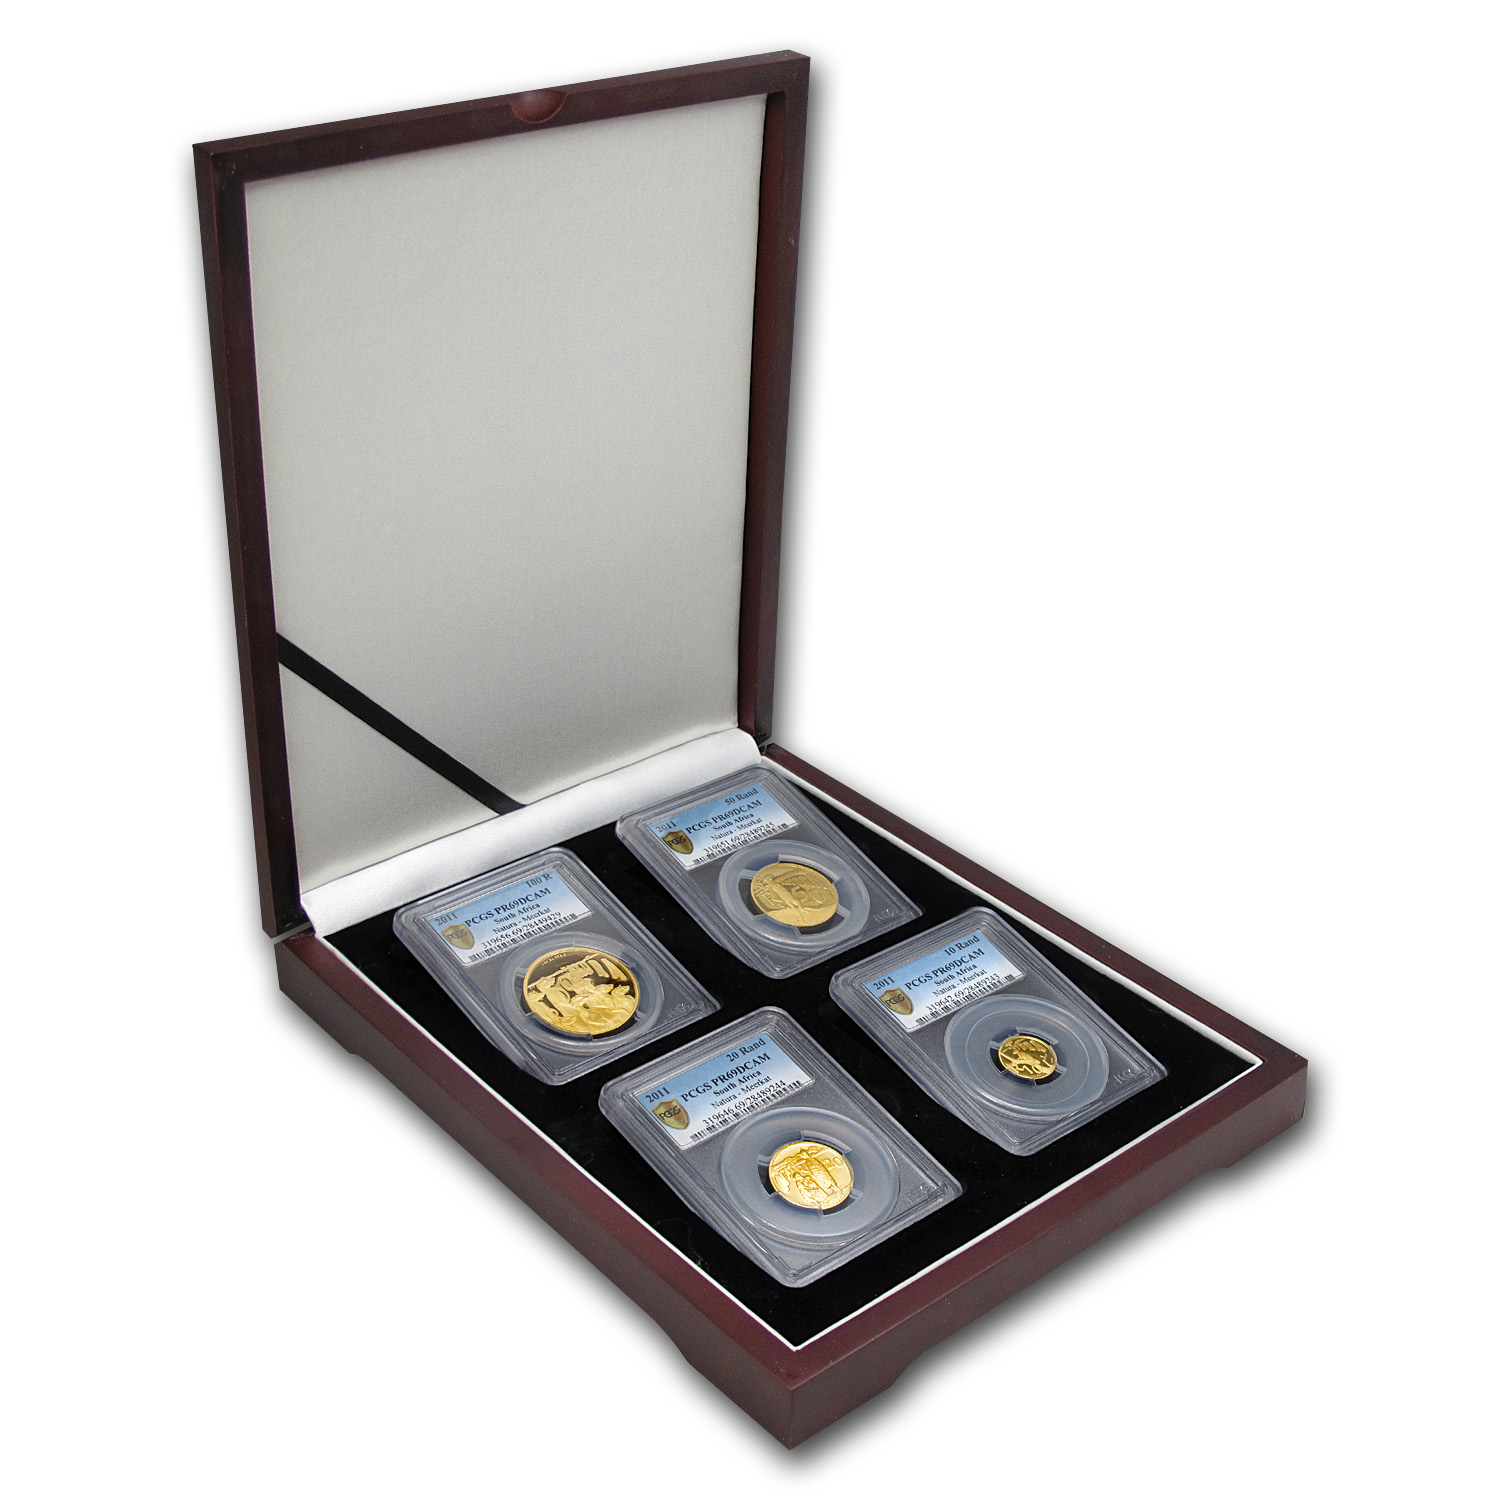 2011 South Africa 4-Coin Gold Natura Meerkat Set PR-69 PCGS